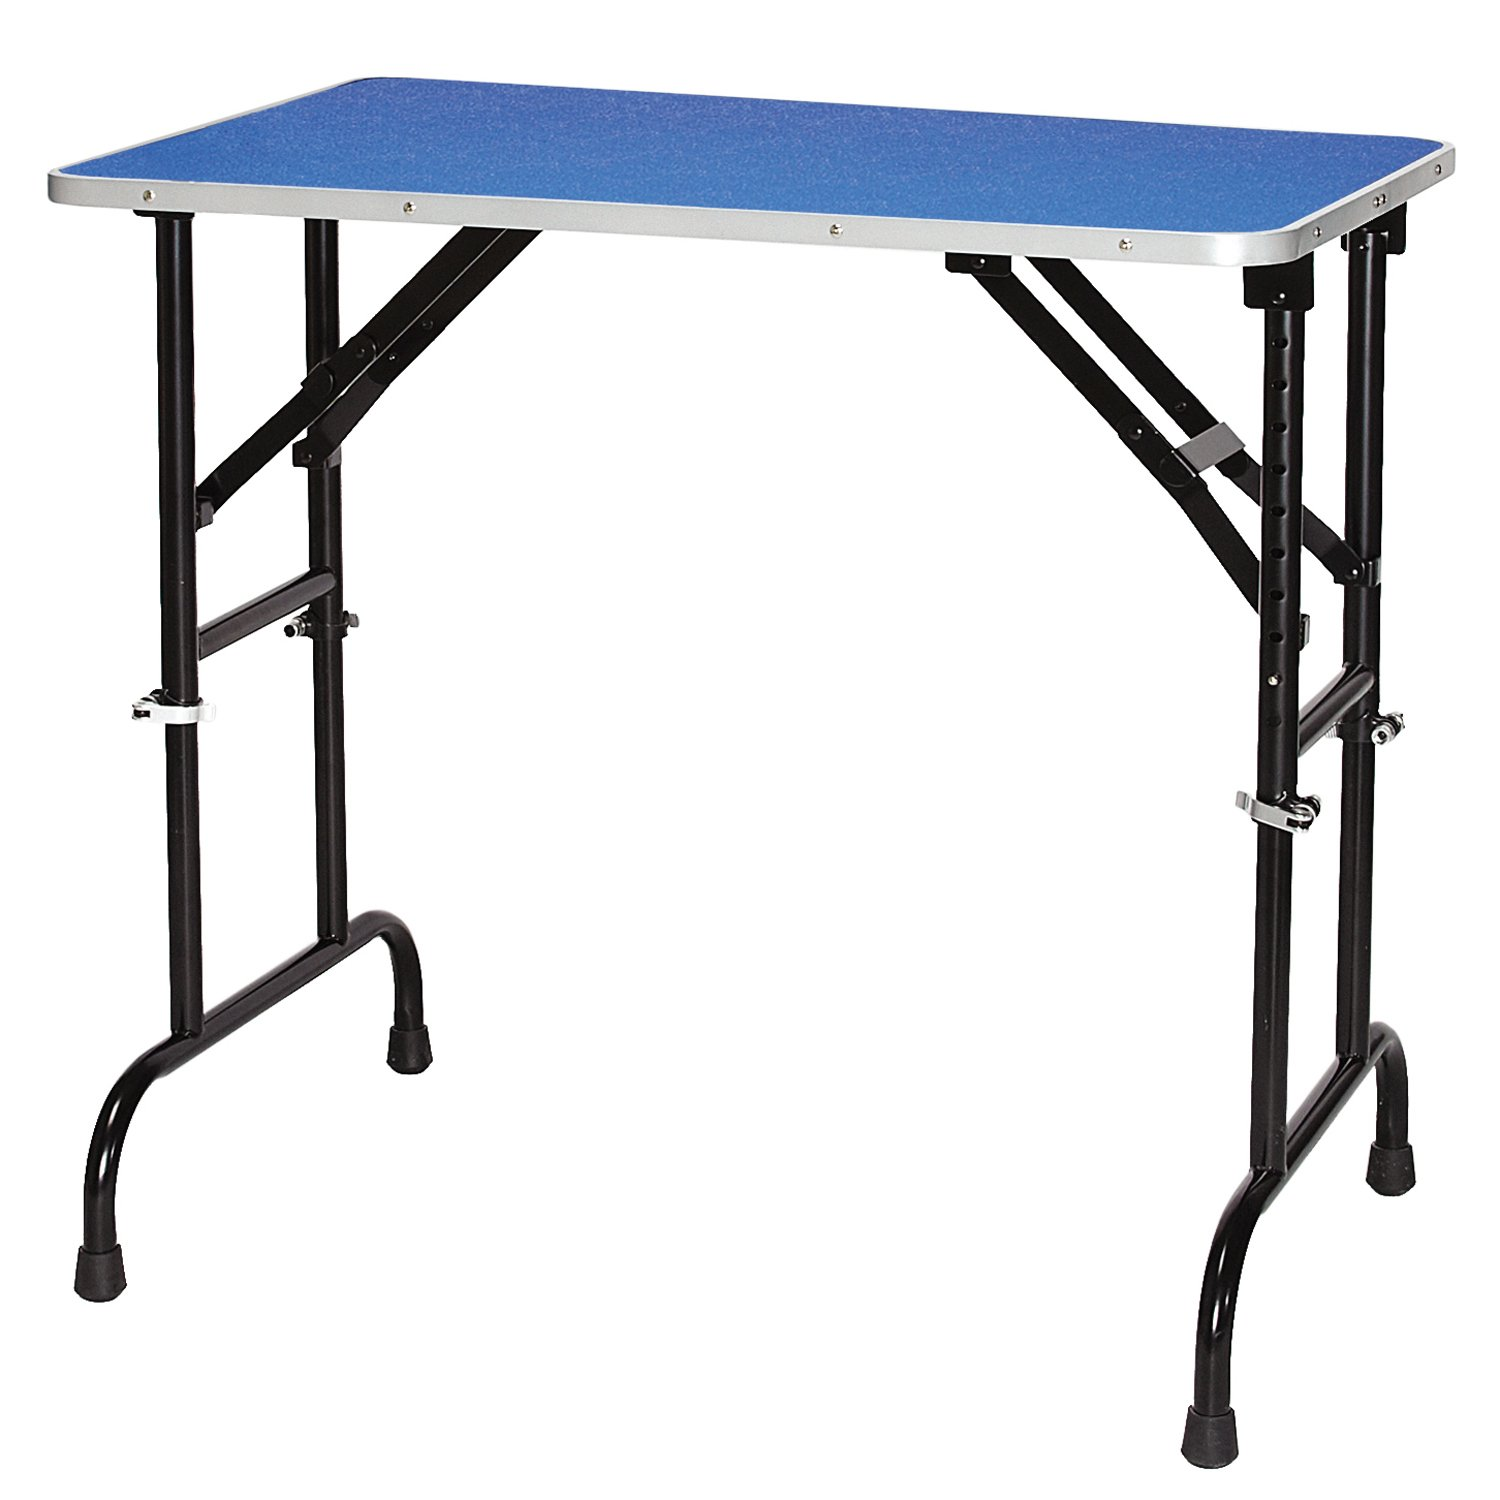 Master Equipment Adjustable Height Grooming Table for Pets, 36 by 24-Inch, Blue by Master Equipment